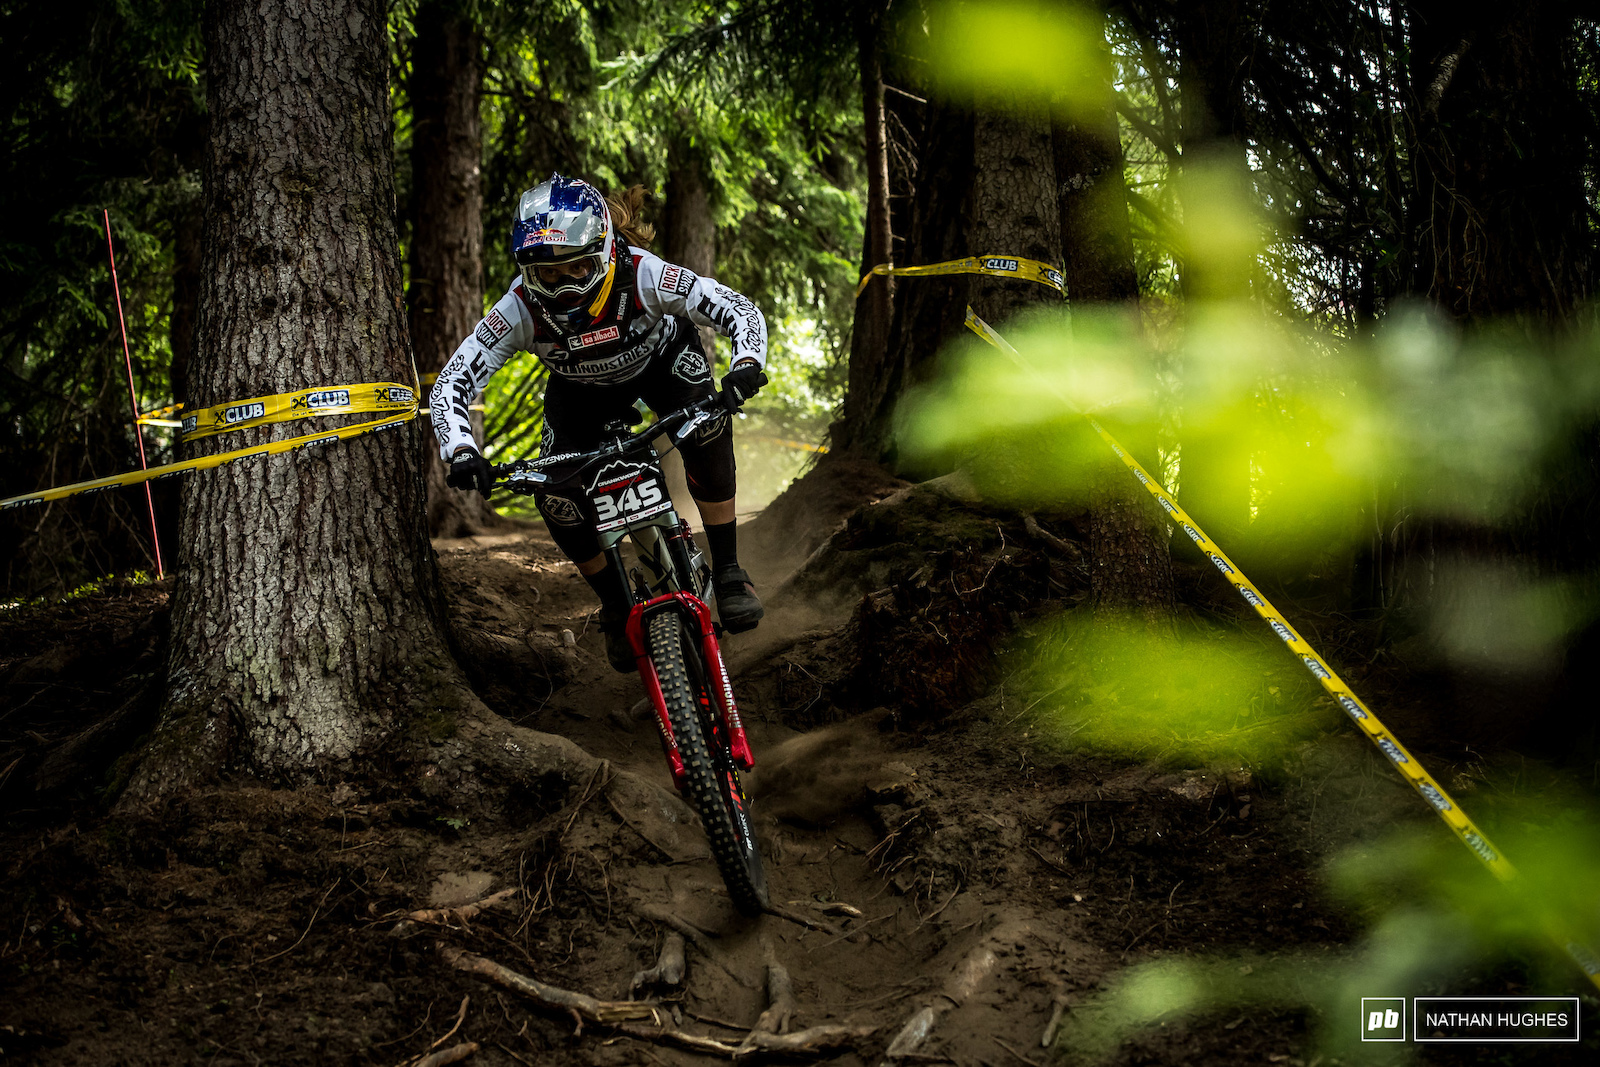 Vali Holl had one heck of a weekend and rode to within just 2 seconds of besting the fastest elite women s time.